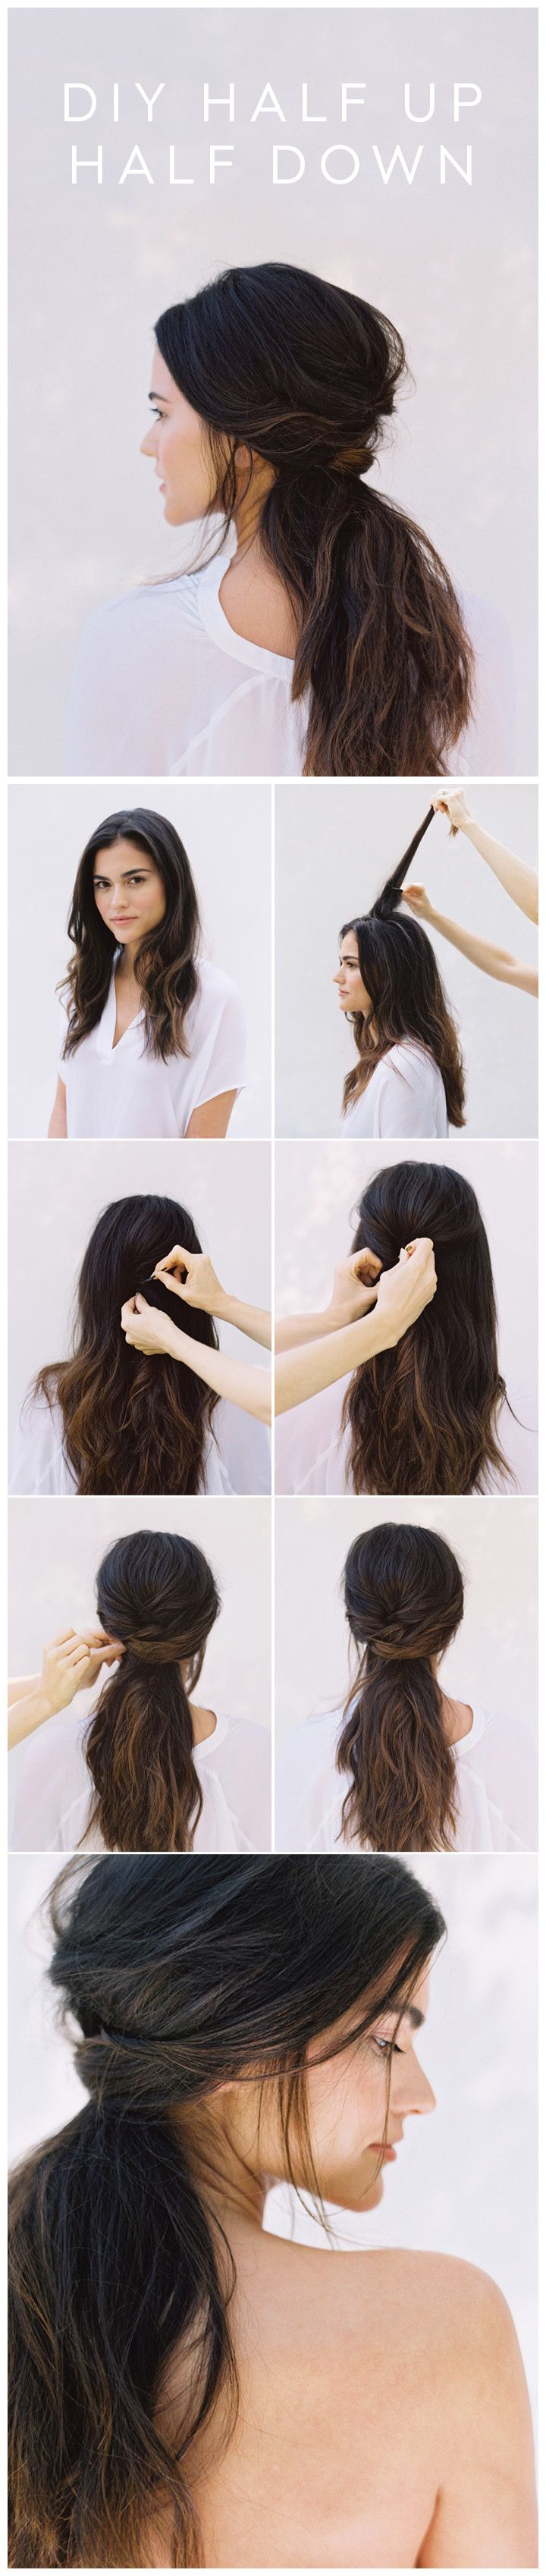 DIY HALF UP HALF DOWN HAIR B E A U T Y Pinterest